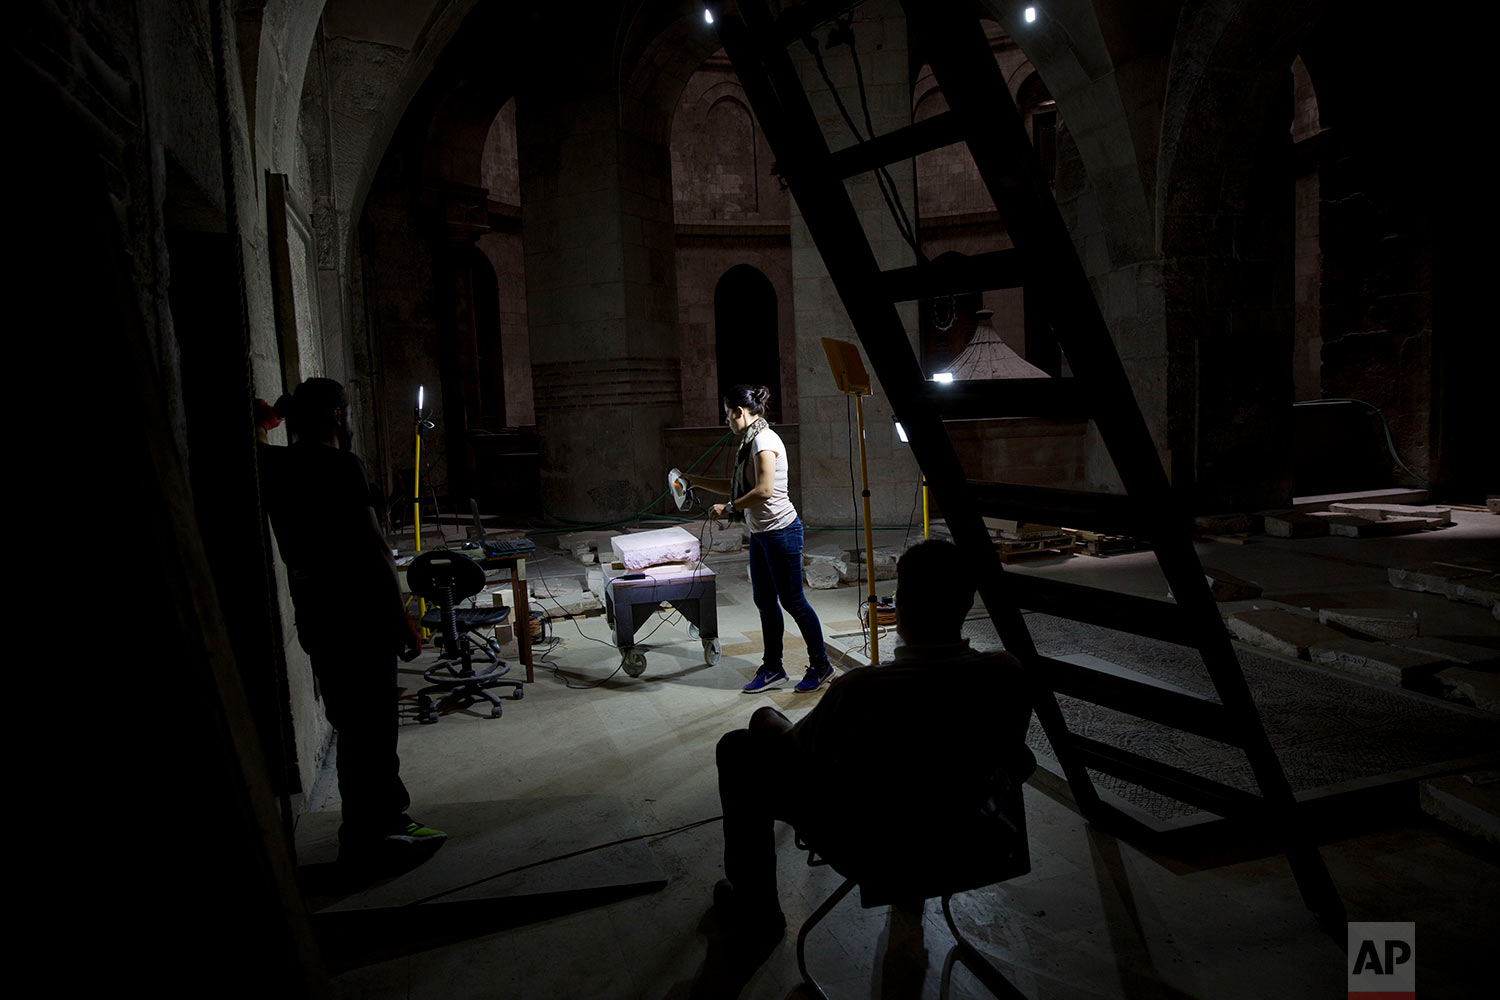 In this Tuesday, Oct. 11, 2016 photo, Elisavet Tsilimantou, member of the conservation team, digitally scans stones before reinstalling them on the façade of the Edicule, the shrine that houses what is believed to be the Tomb of Jesus in the Church of the Holy Sepulchre in Jerusalem's Old City.  (AP Photo/Oded Balilty)